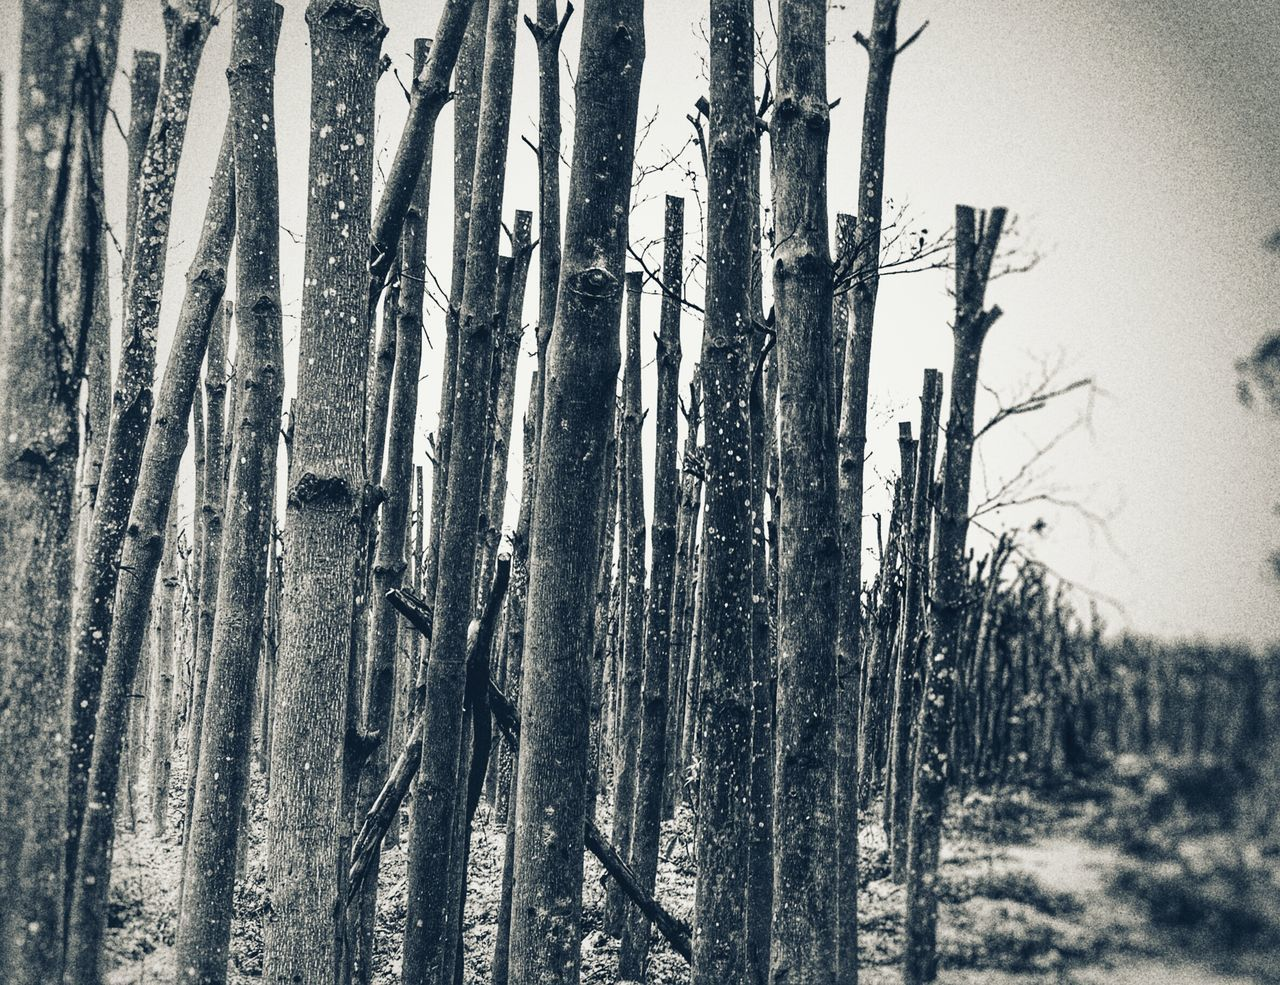 tree trunk, tree, nature, day, forest, outdoors, no people, growth, tranquility, beauty in nature, landscape, bamboo - plant, close-up, sky